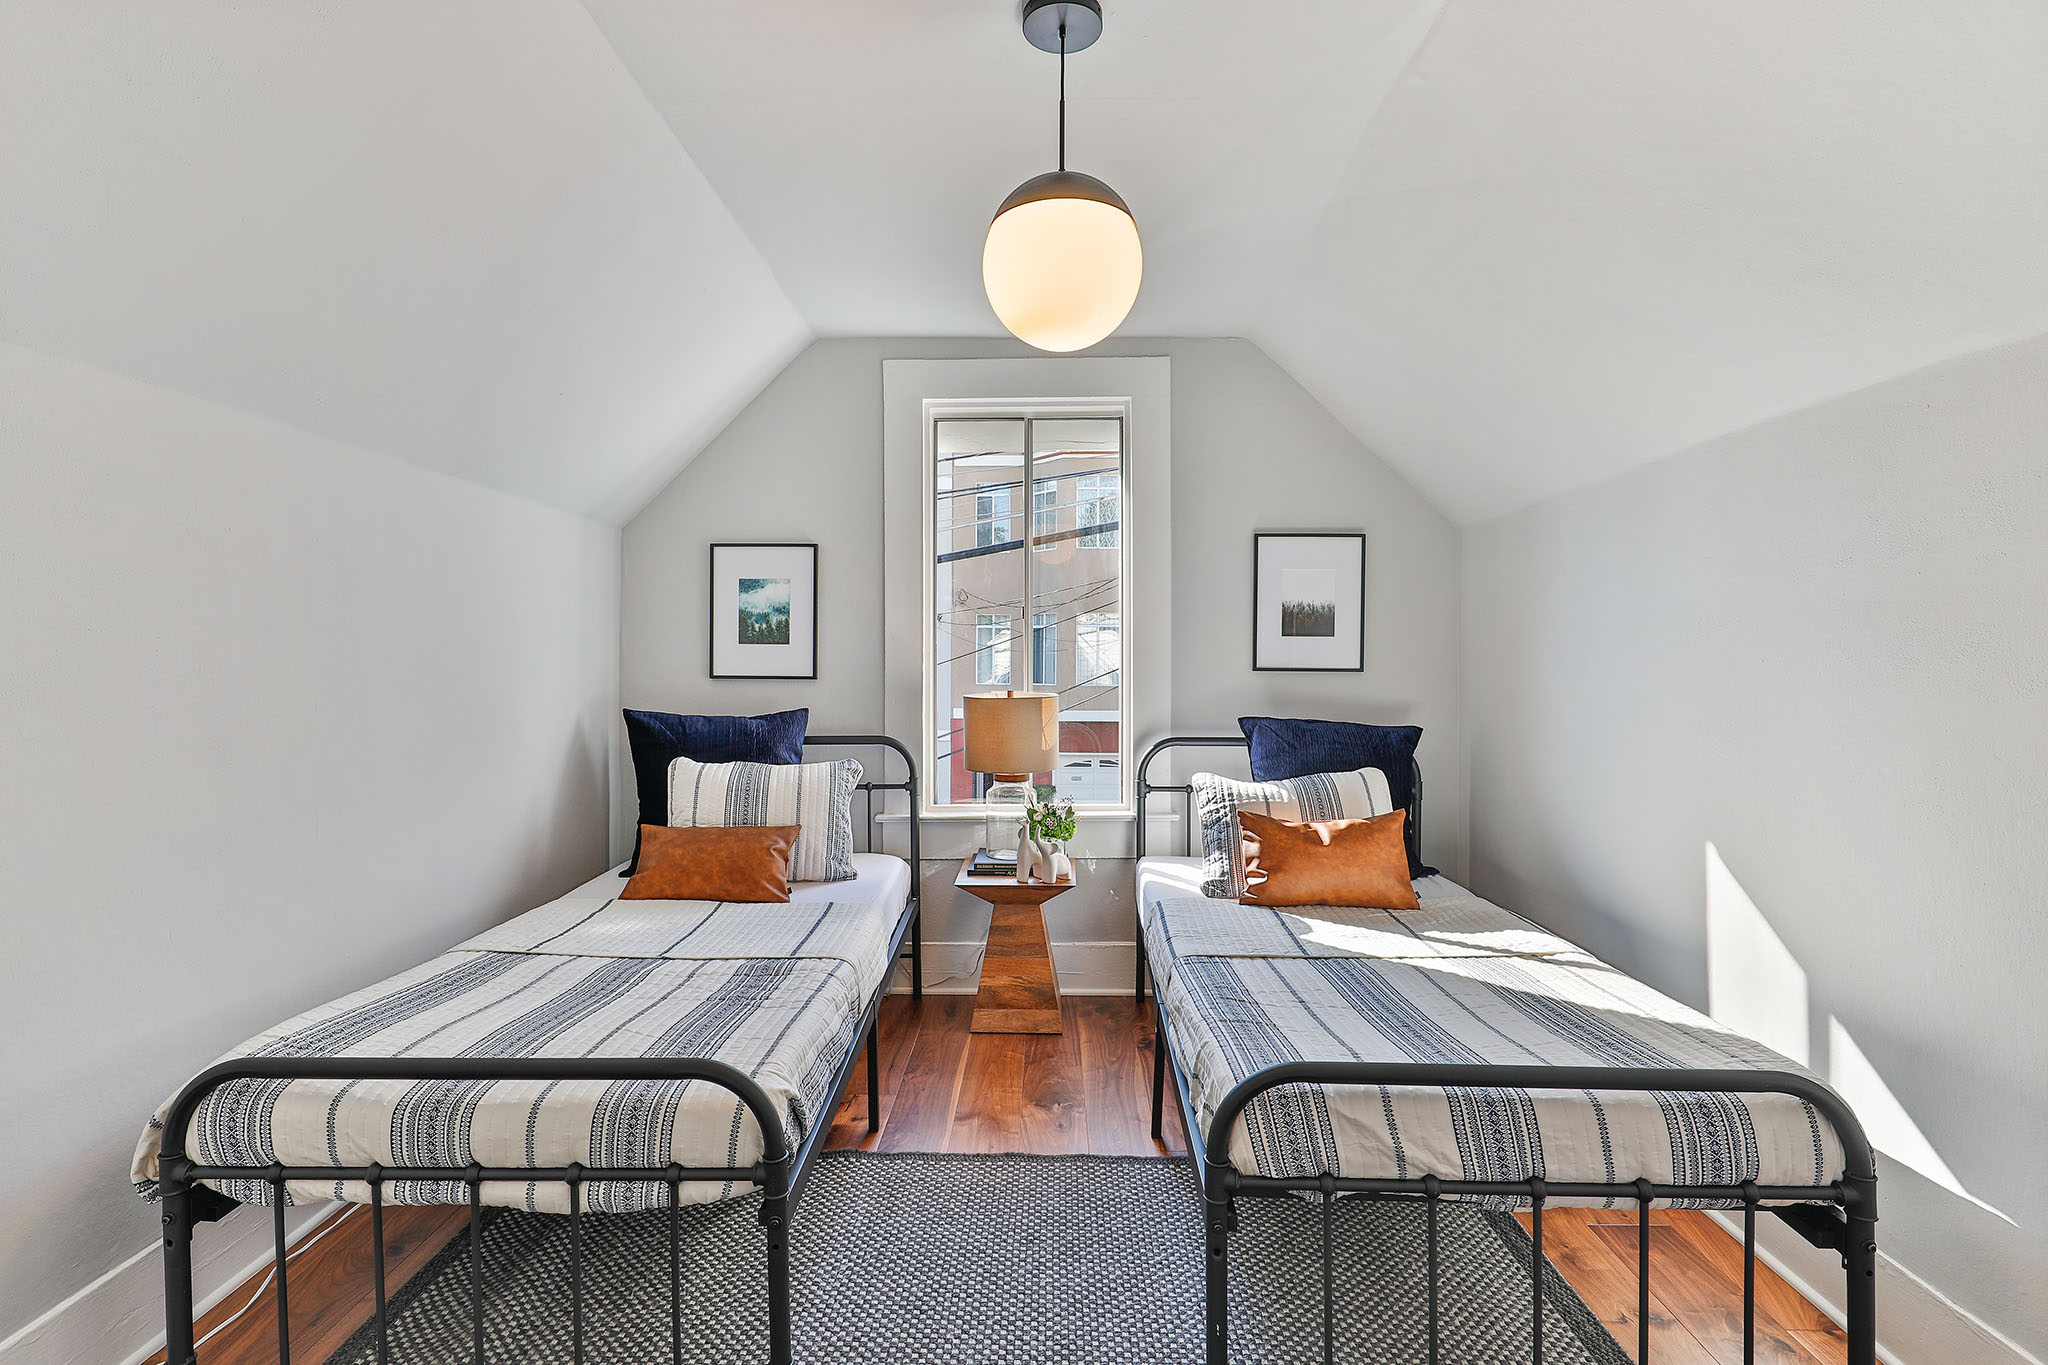 SF Real Estate - bedroom with two twin beds